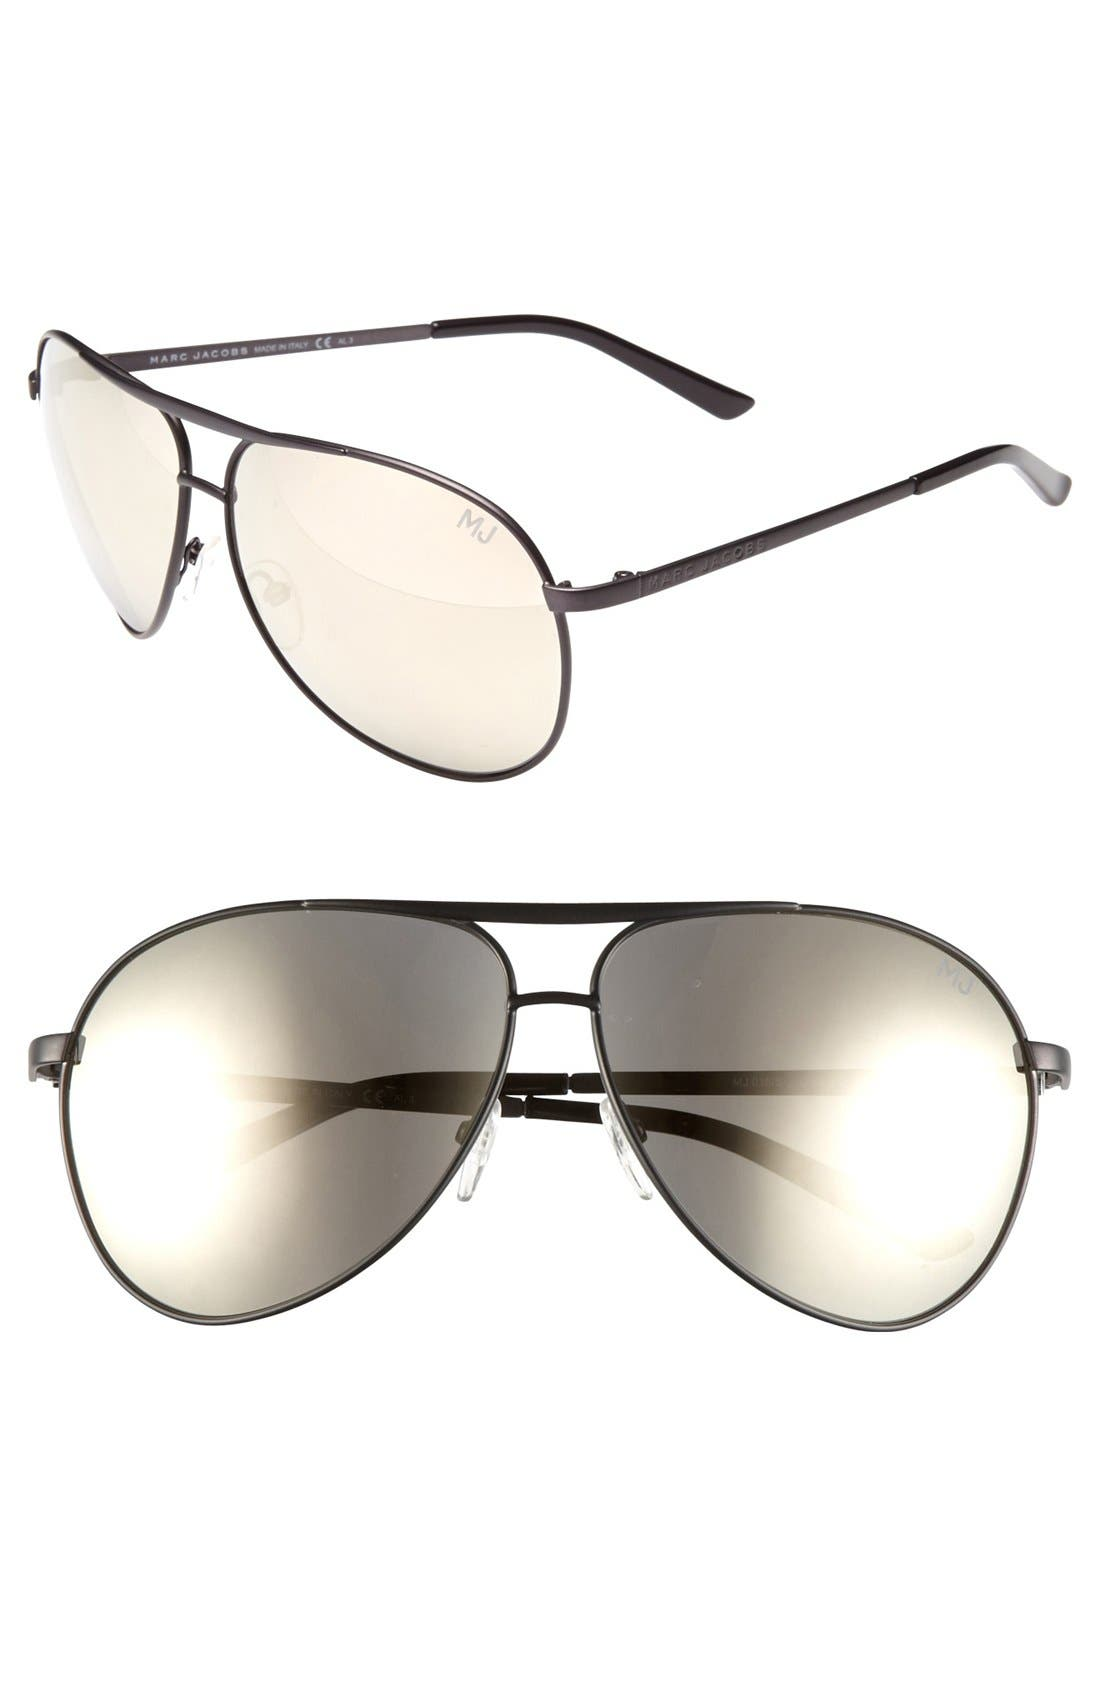 Alternate Image 1 Selected - MARC JACOBS 'Signature' 62mm Metal Aviator Sunglasses